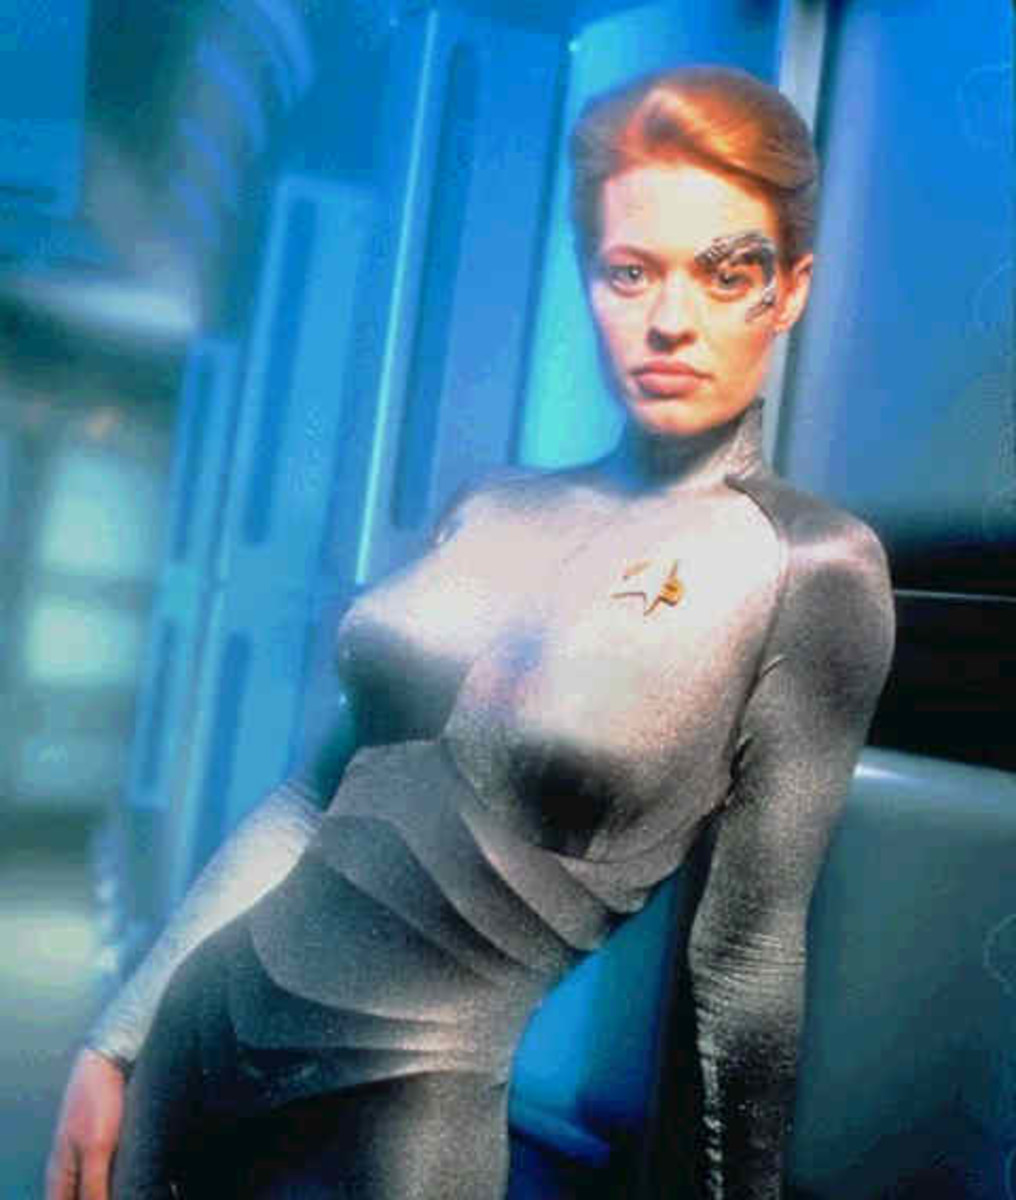 Seven of Nine is a rescued borg female, who stars in the voyager series